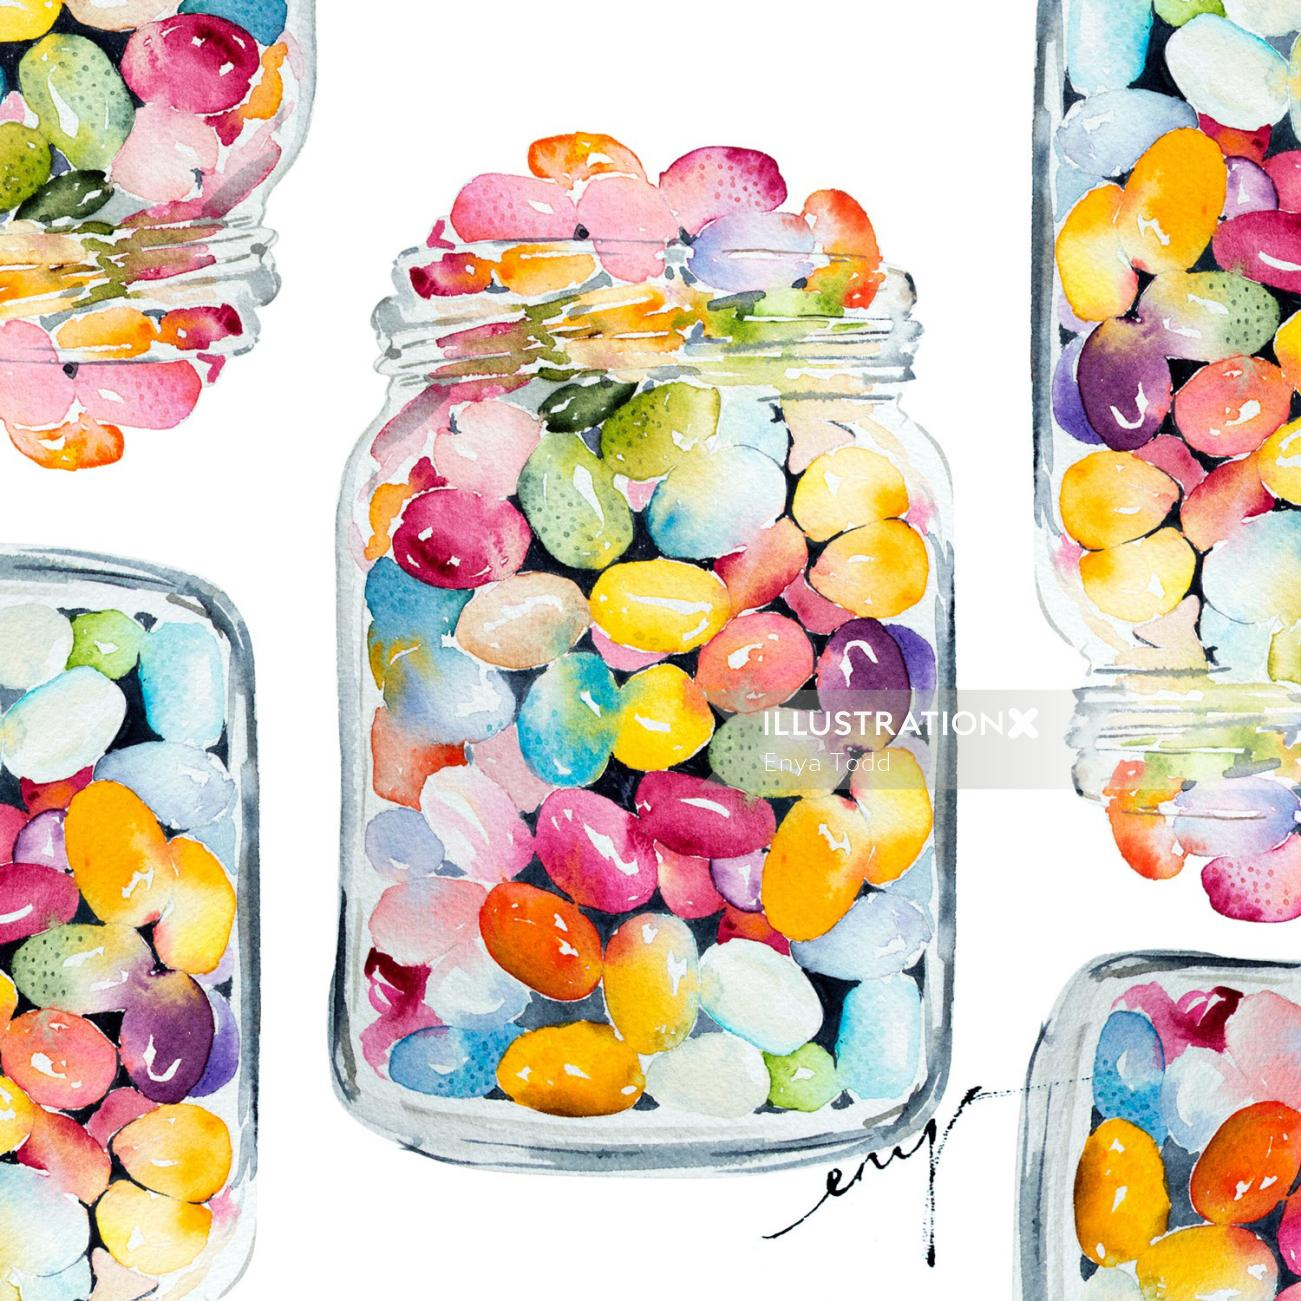 Painting of the jelly belly jar